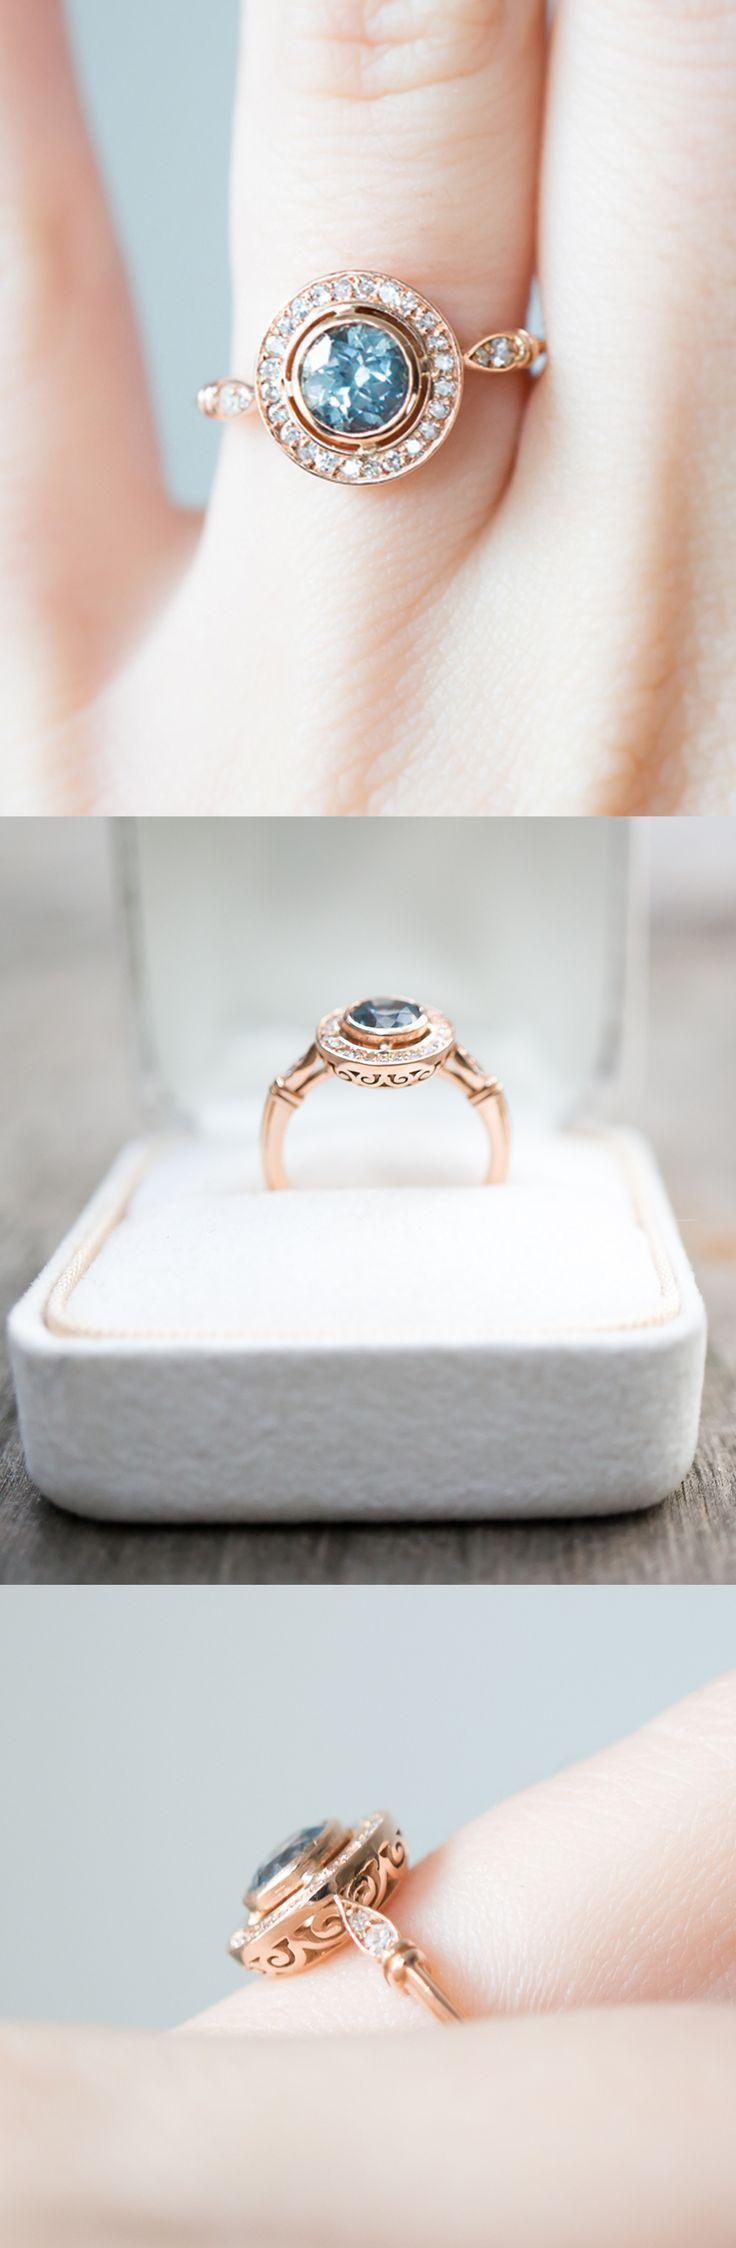 A detailed Halo engagement ring with a light blue sapphire and 28 reclaimed diamonds in 18k gold by S. Kind & Co. #DazzlingDiamondEngagementRings